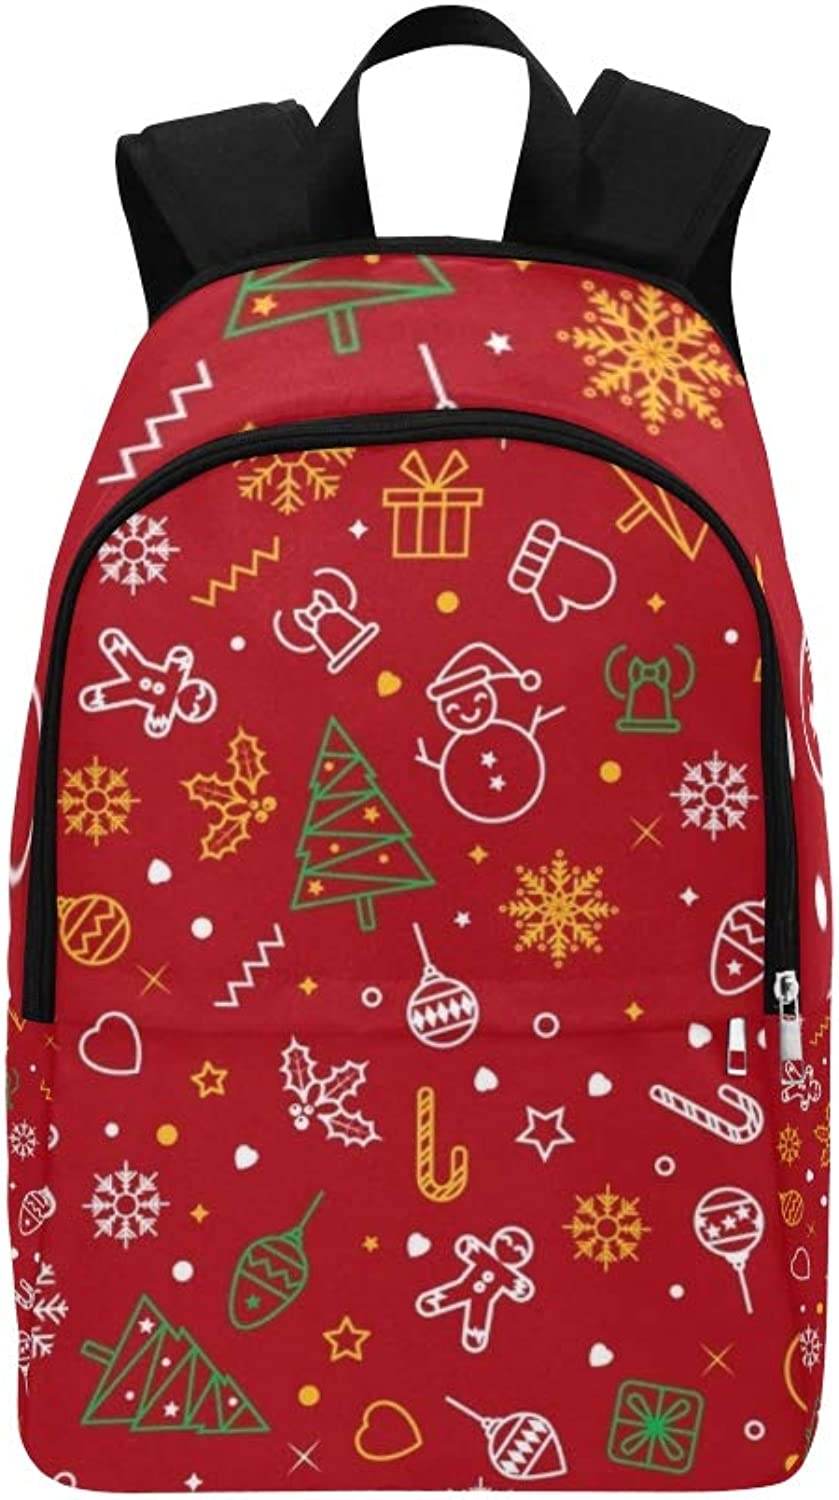 Christmas Elements Christmas Casual Daypack Travel Bag College School Backpack for Mens and Women